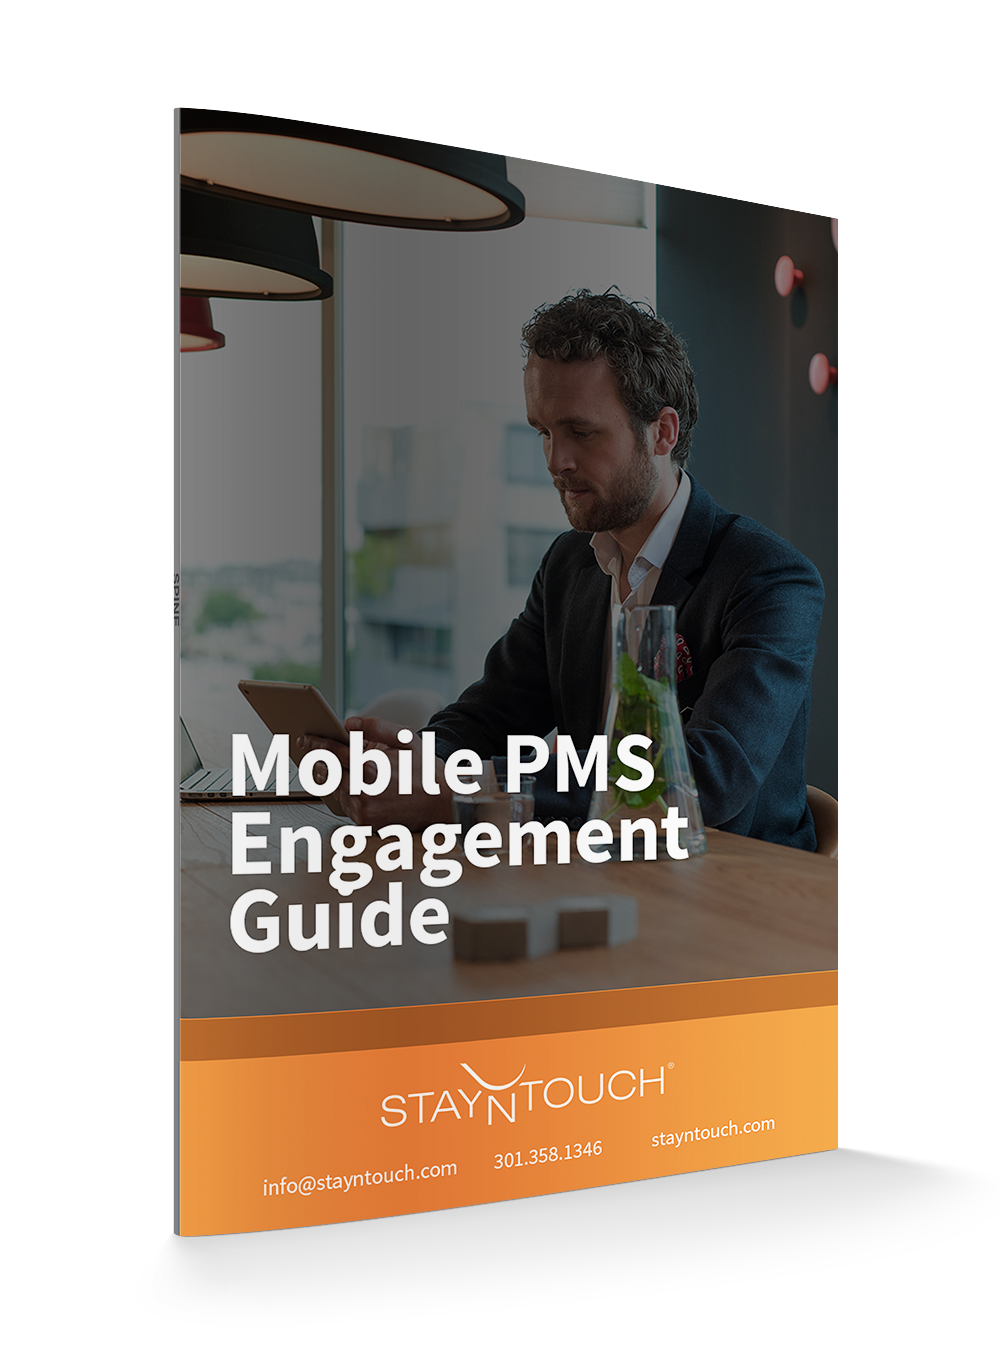 Mobile PMS Engagement Guide - Stayntouch